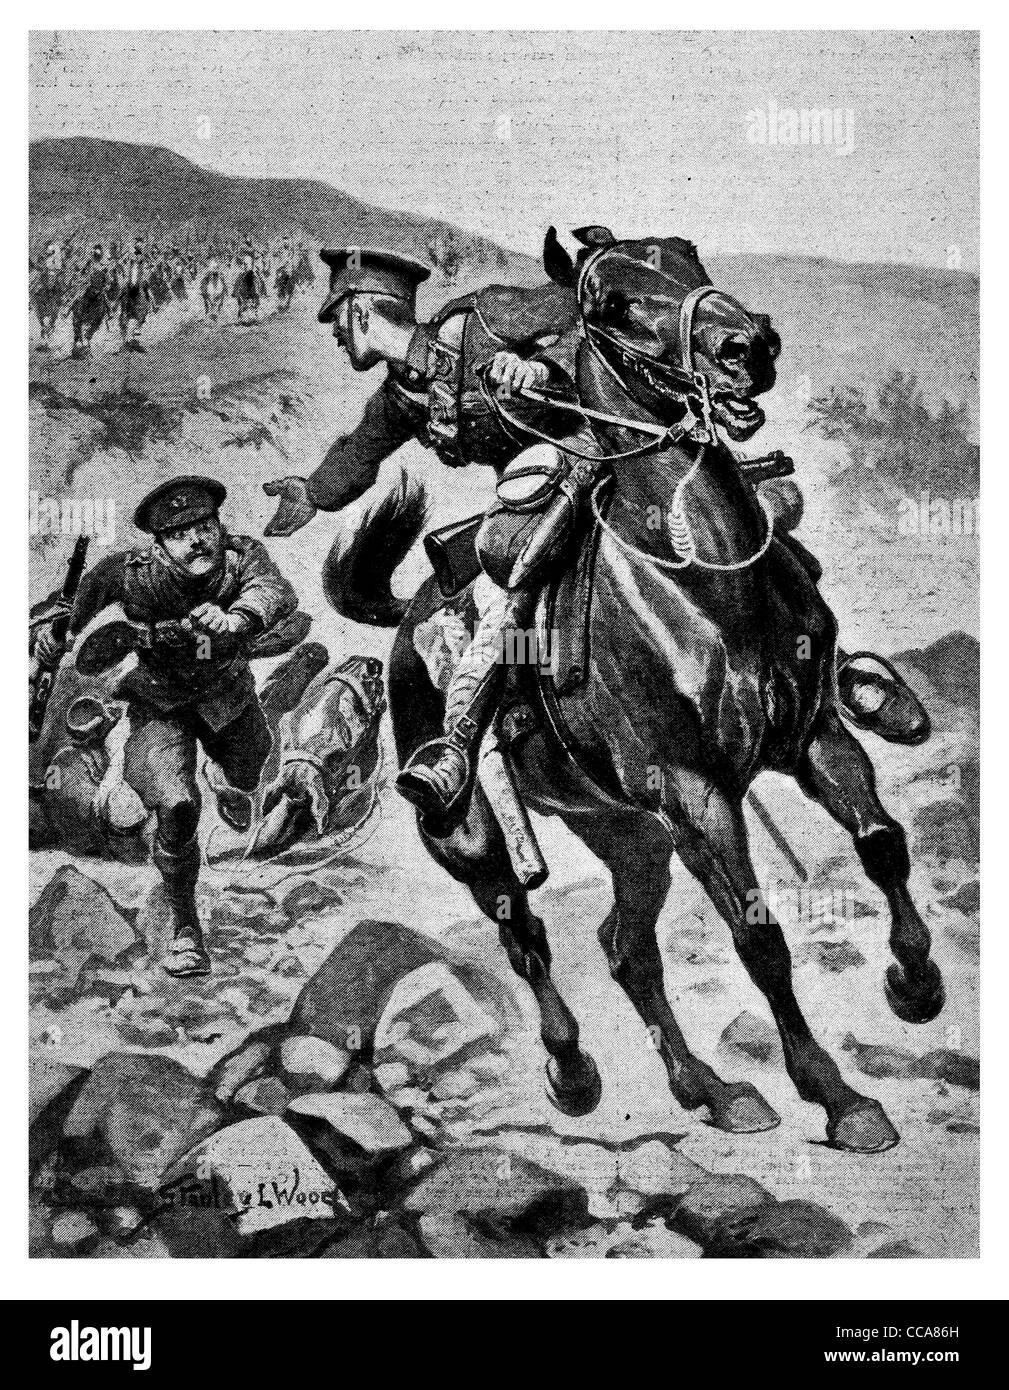 1916 saving comrade dragging saddle British cavalry escape rescue brave riding horse running away fear help helping - Stock Image